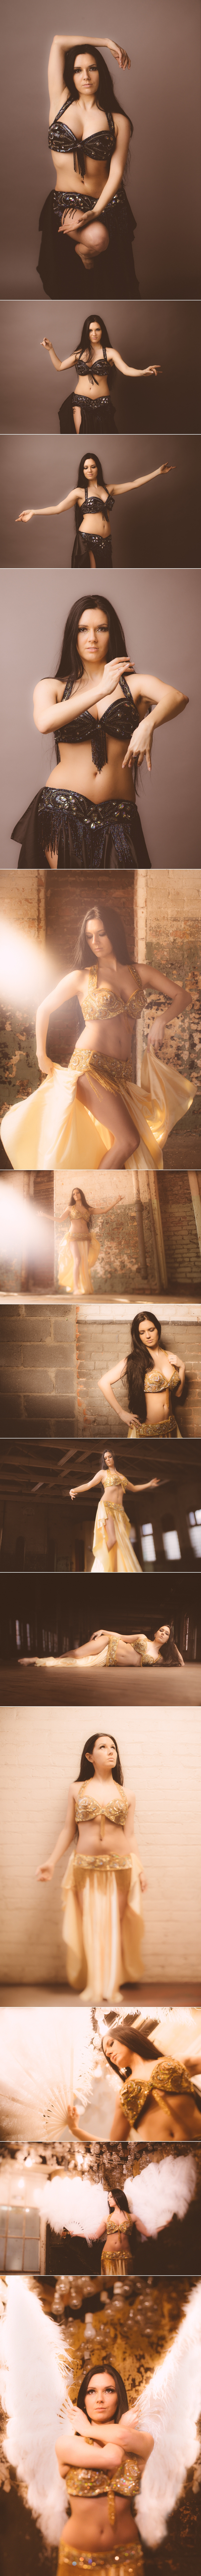 NJ Bellydancer Venus photographed at The Art Factory